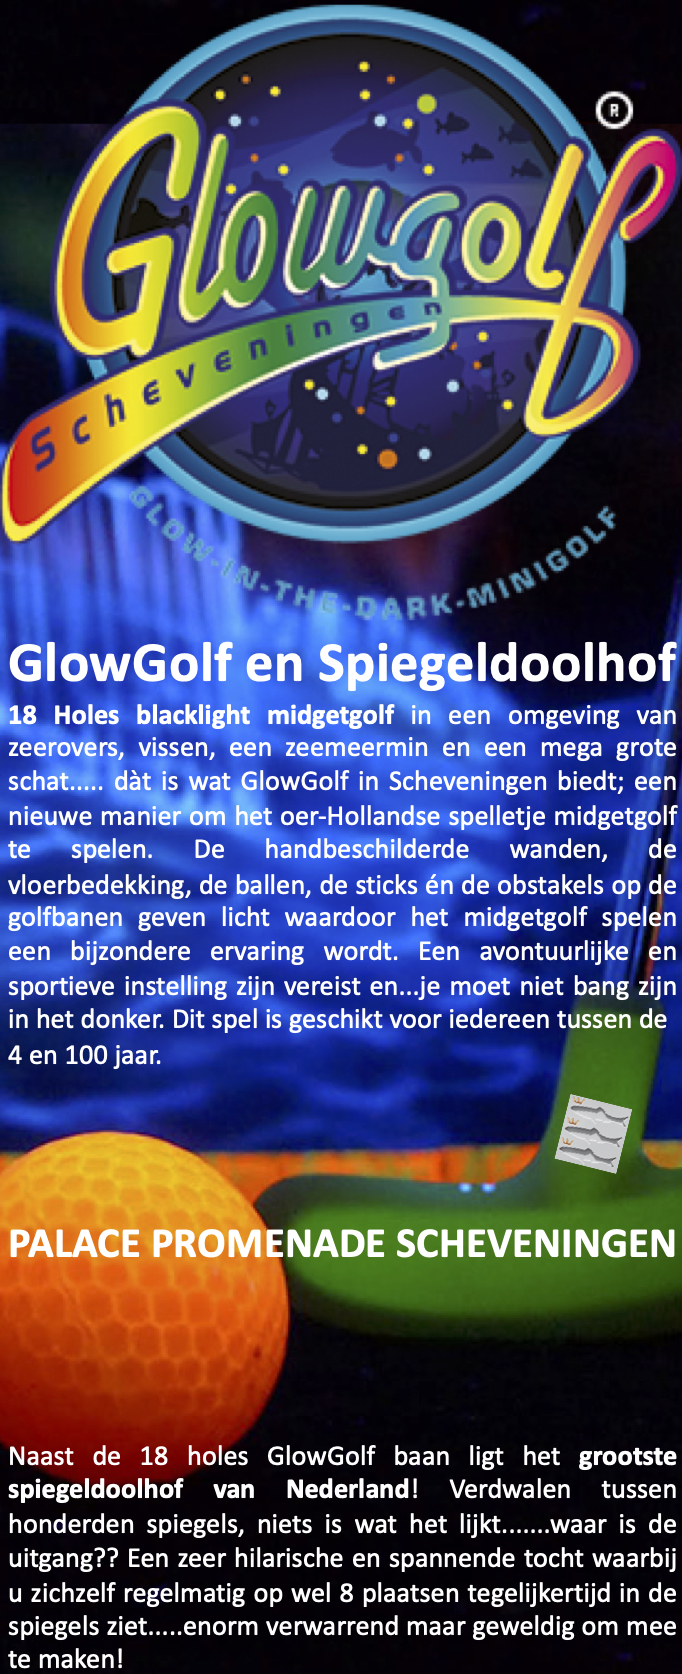 GlowGolf in the Dark Scheveningen SpiegelDoolhof